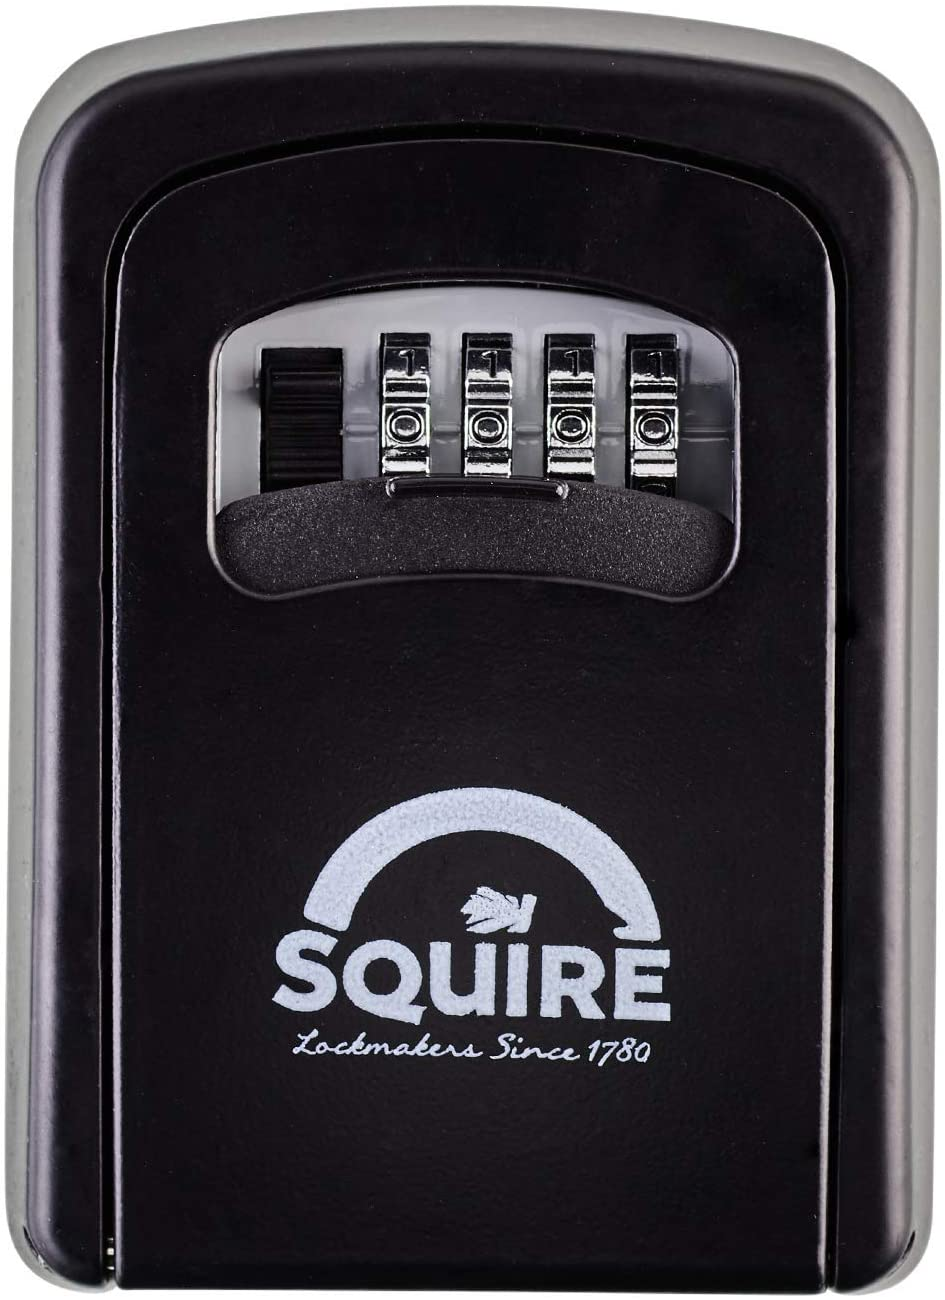 Squire Key Safe. High Security Key Lock Box for Internal and External Use. Weatherproof Wall-Mounted Recodable Key Storage Box (Key Keep 1)